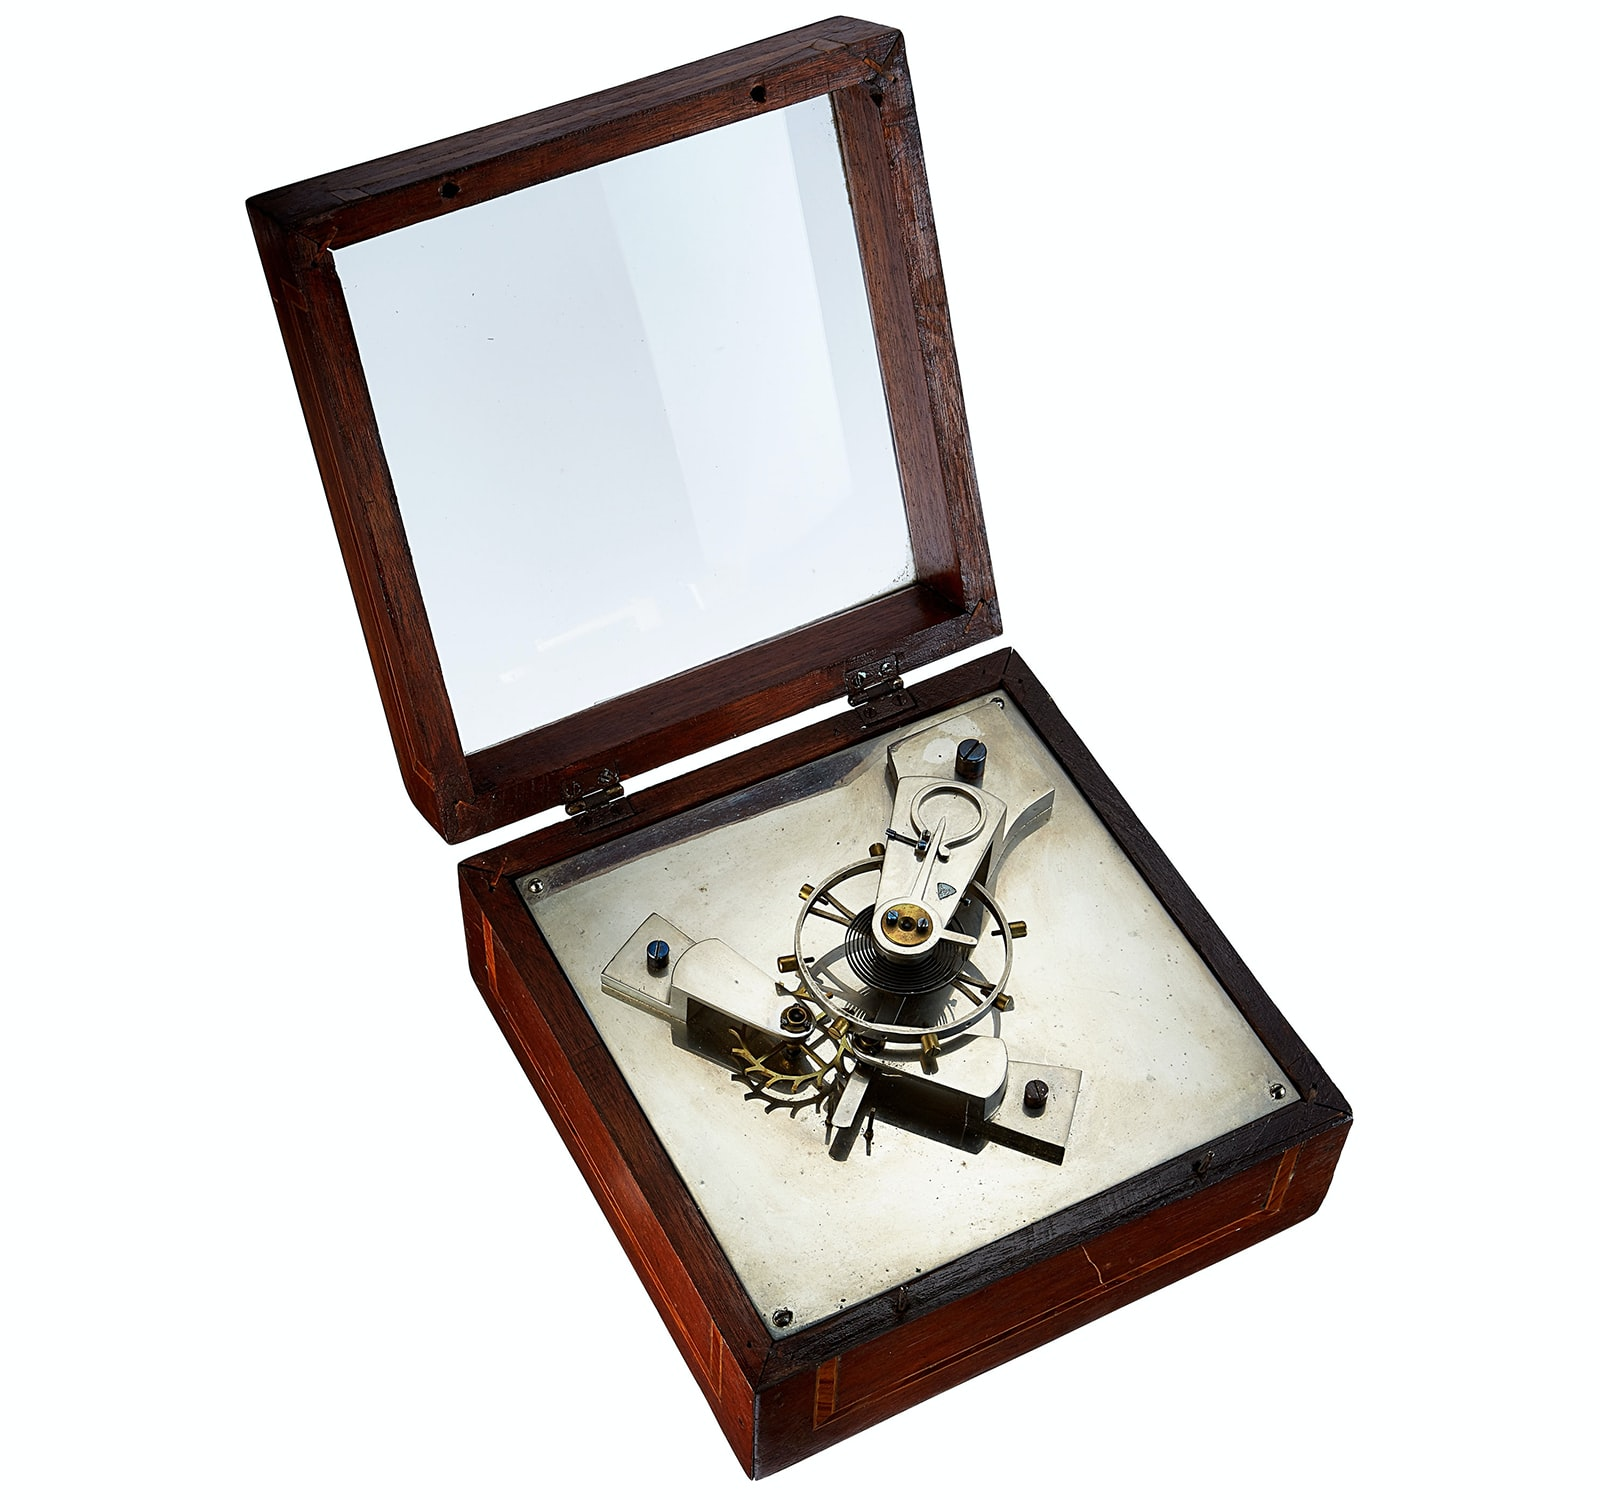 Found: A Captivating Collection Of Escapement Models At Heritage Auction's May 26th Sale Found: A Captivating Collection Of Escapement Models At Heritage Auction's May 26th Sale d 2